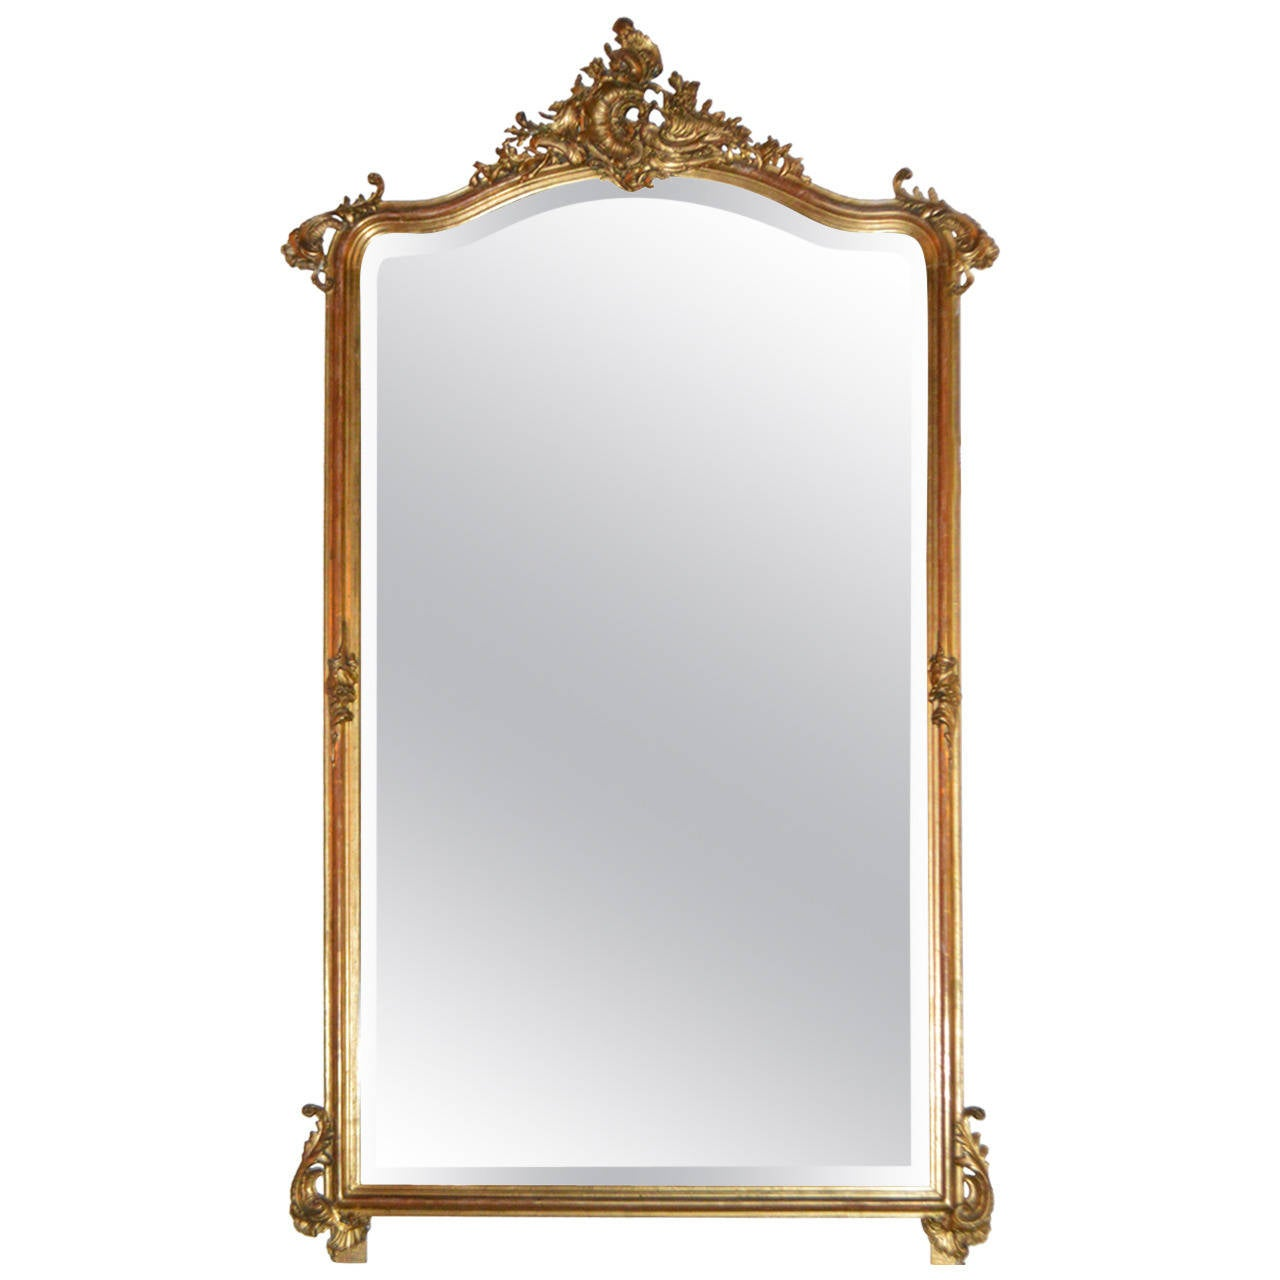 Arched gilt mirror at 1stdibs - 19th Century Louis Xv Style Large Gilded Mirror 1